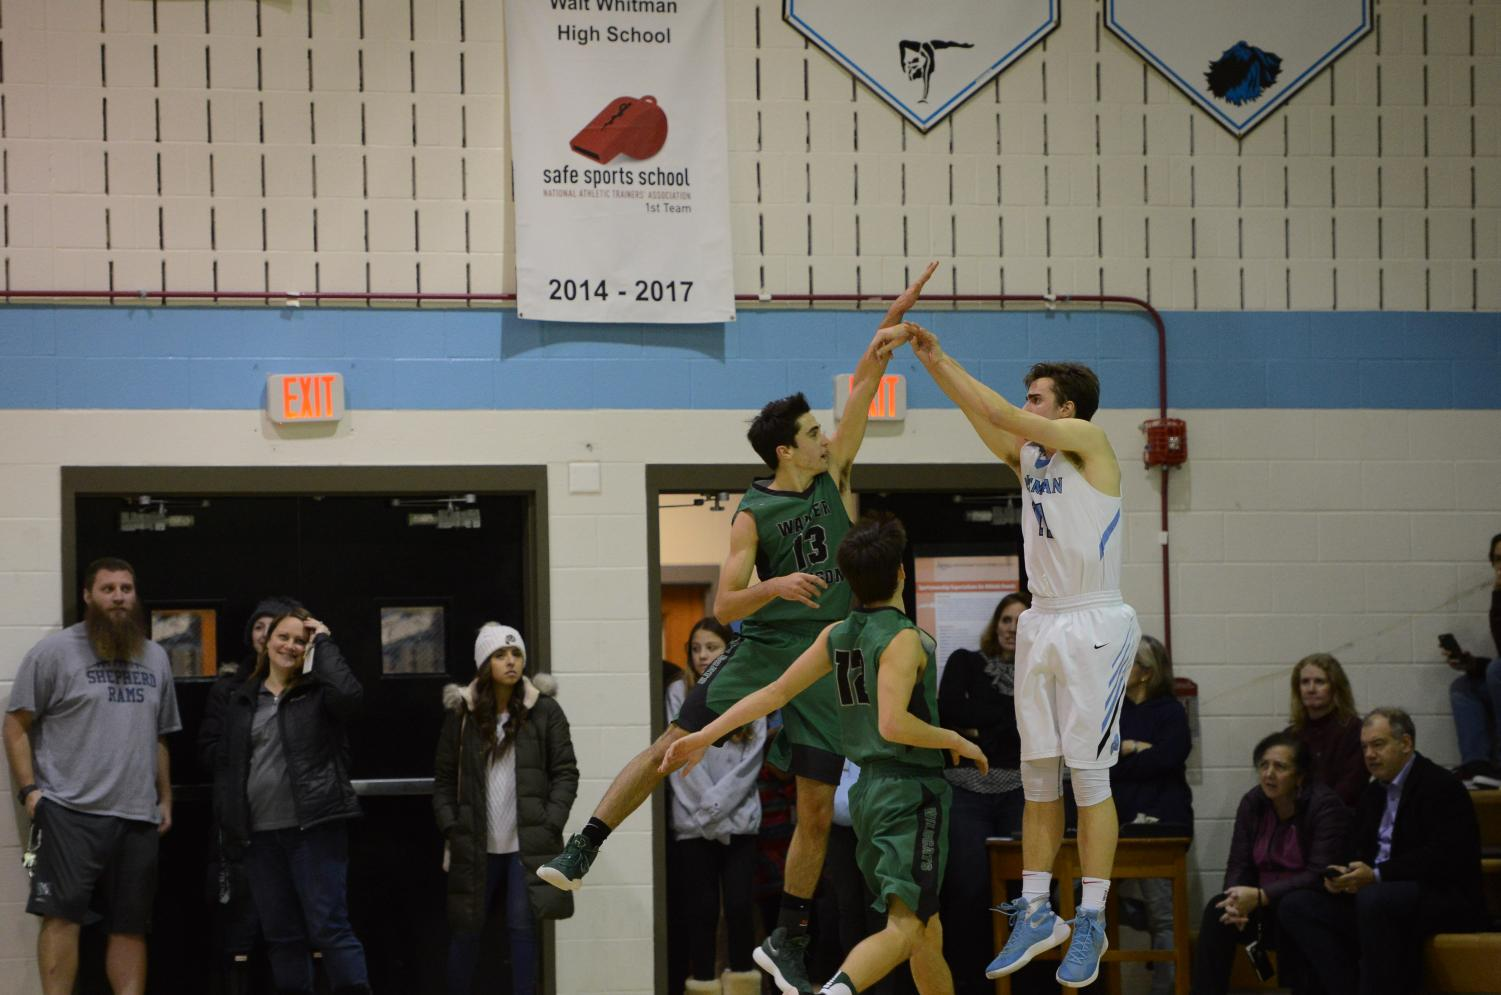 Senior captains William Koenick and Nick Bournias jump to block their opponent's shot. Koenick and Bournias have been leading scorers for the team throughout the season.